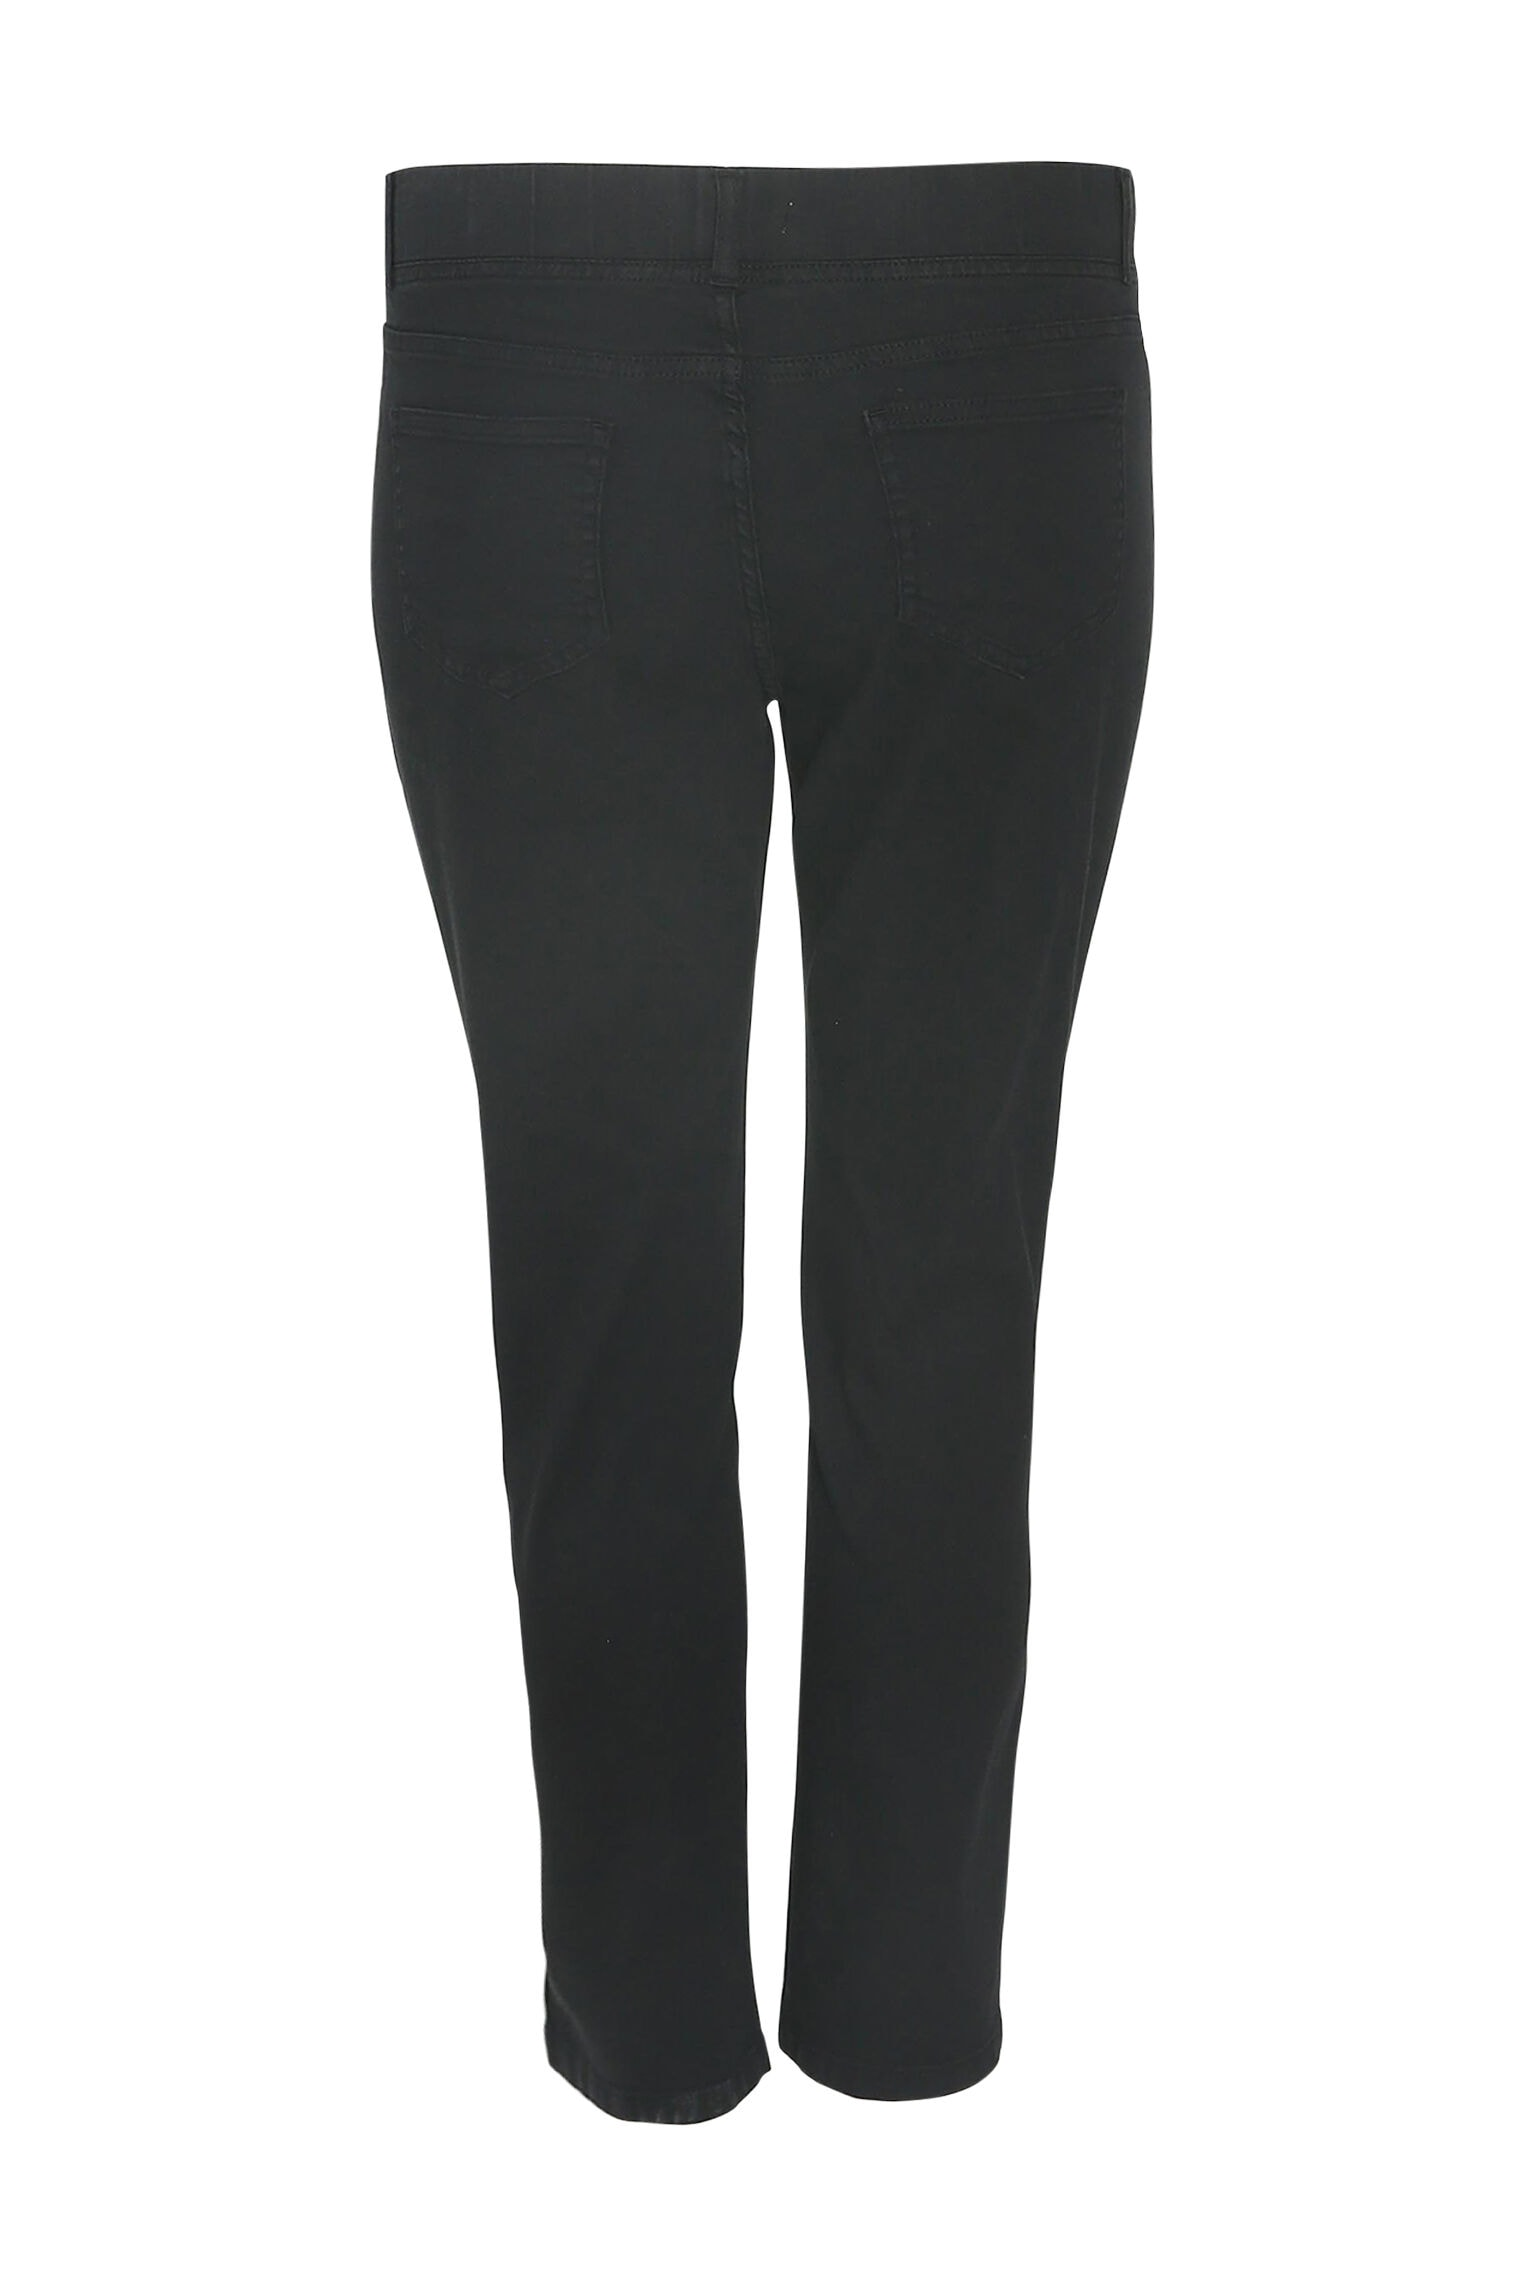 paprika -  Jeggings Uniform Gummizug in der Taille casual, city